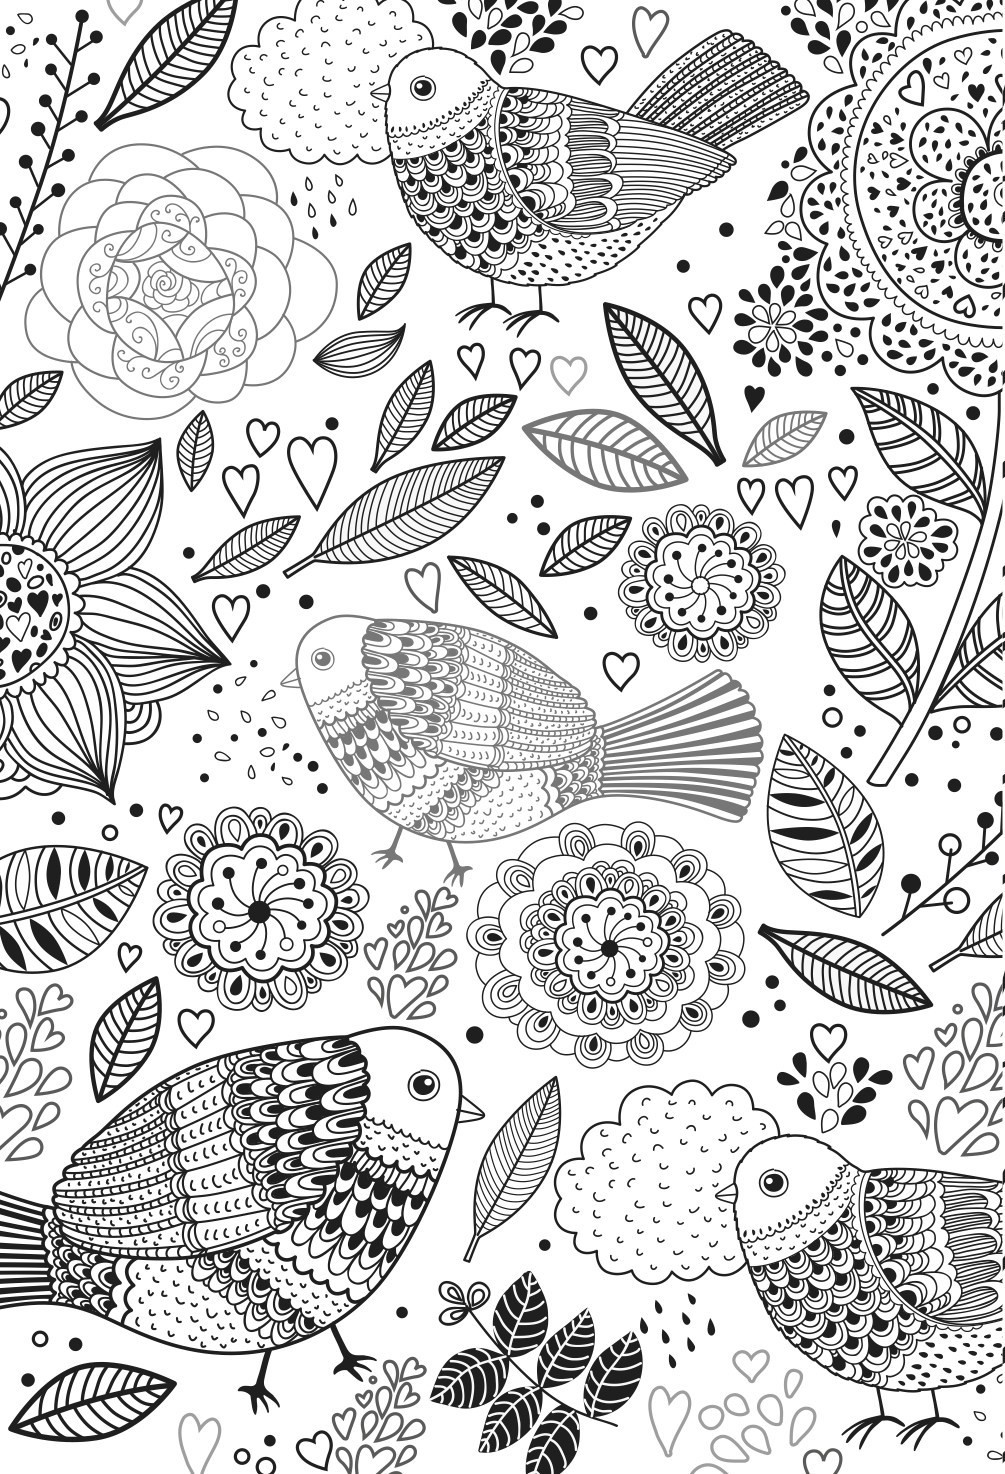 Best ideas about Adult Stress Coloring Books . Save or Pin Colouring Books for Adults In The Playroom Now.